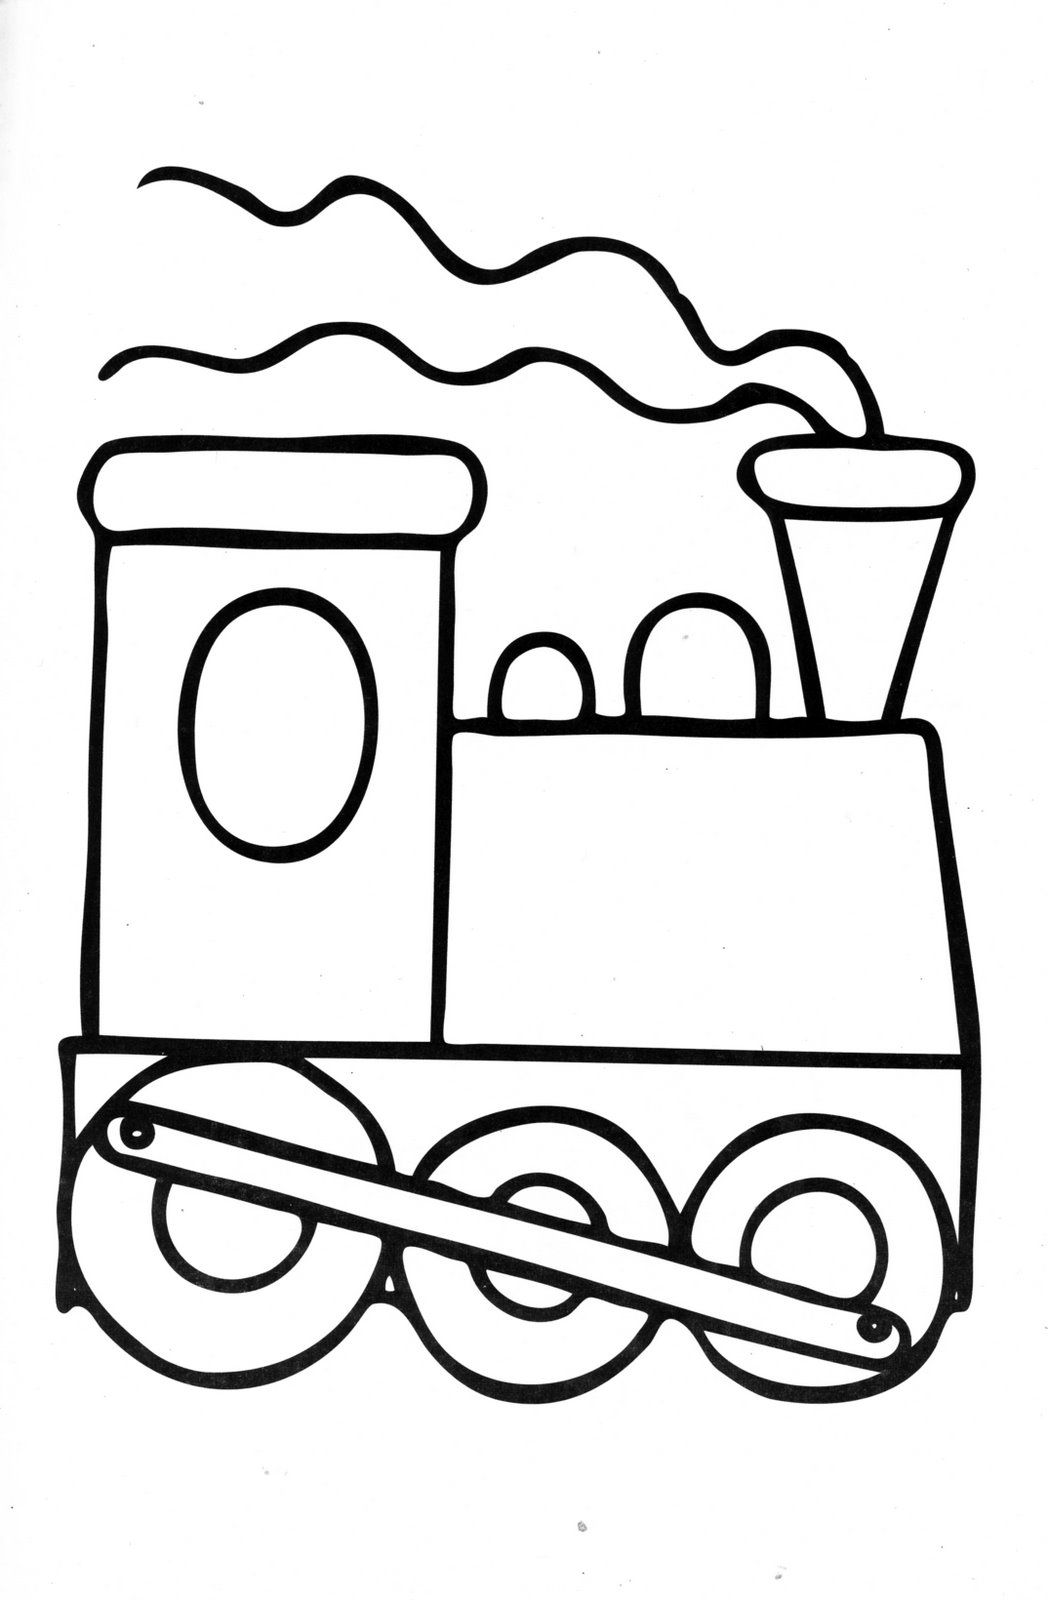 coloring page simple simple owl coloring pages bestappsforkidscom page coloring simple